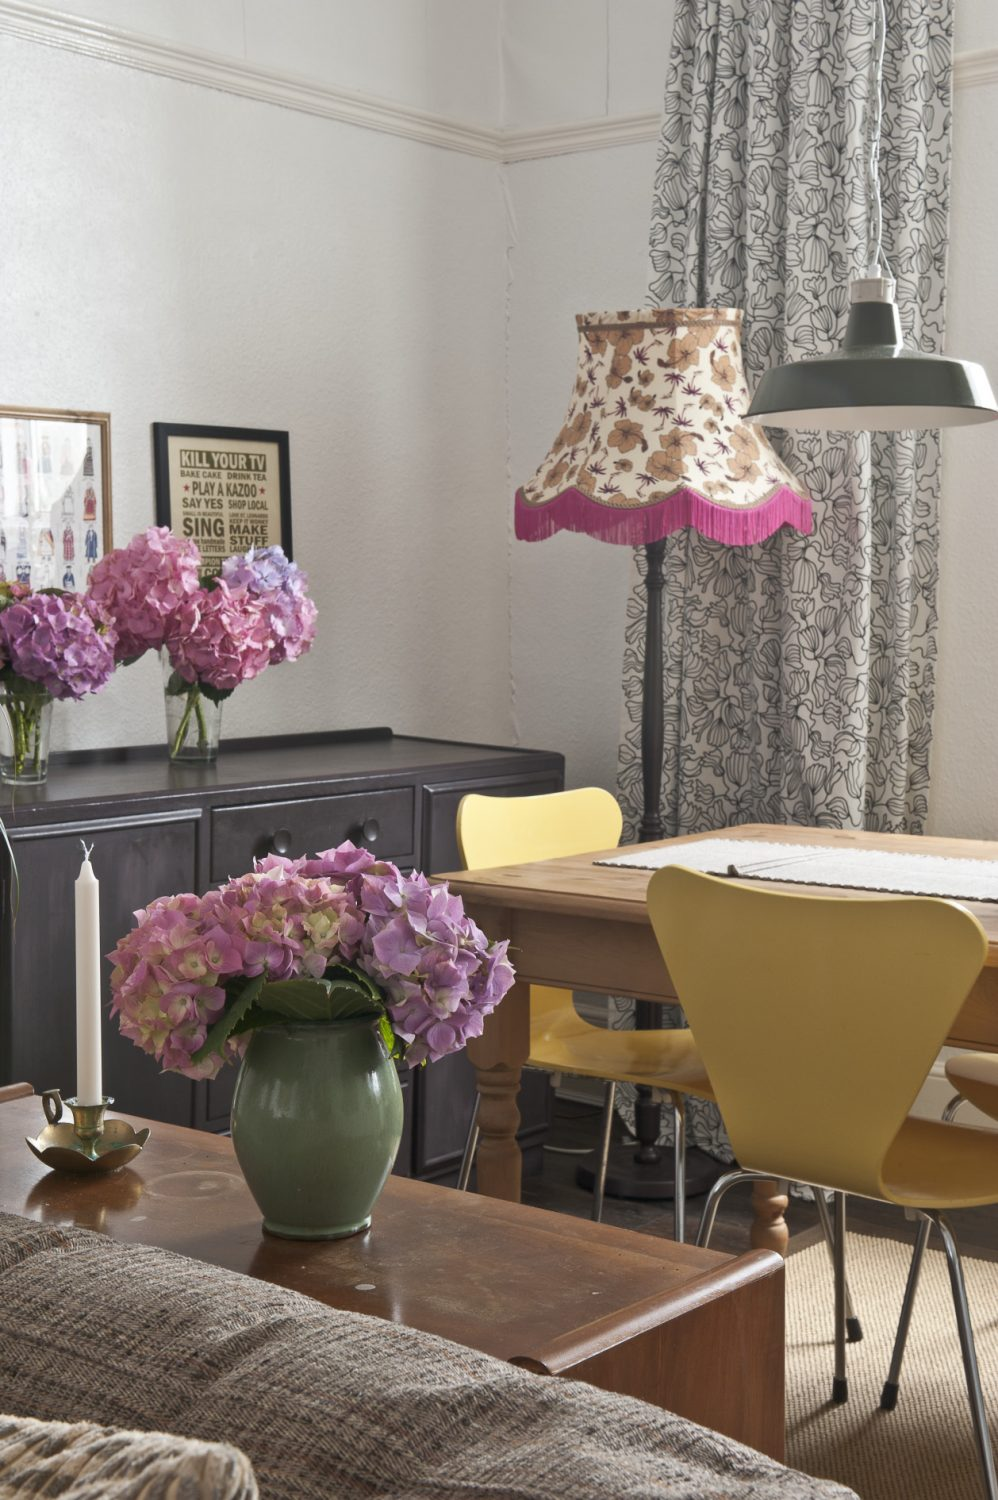 Charlotte's standard lamps add a vibrant pop of colour